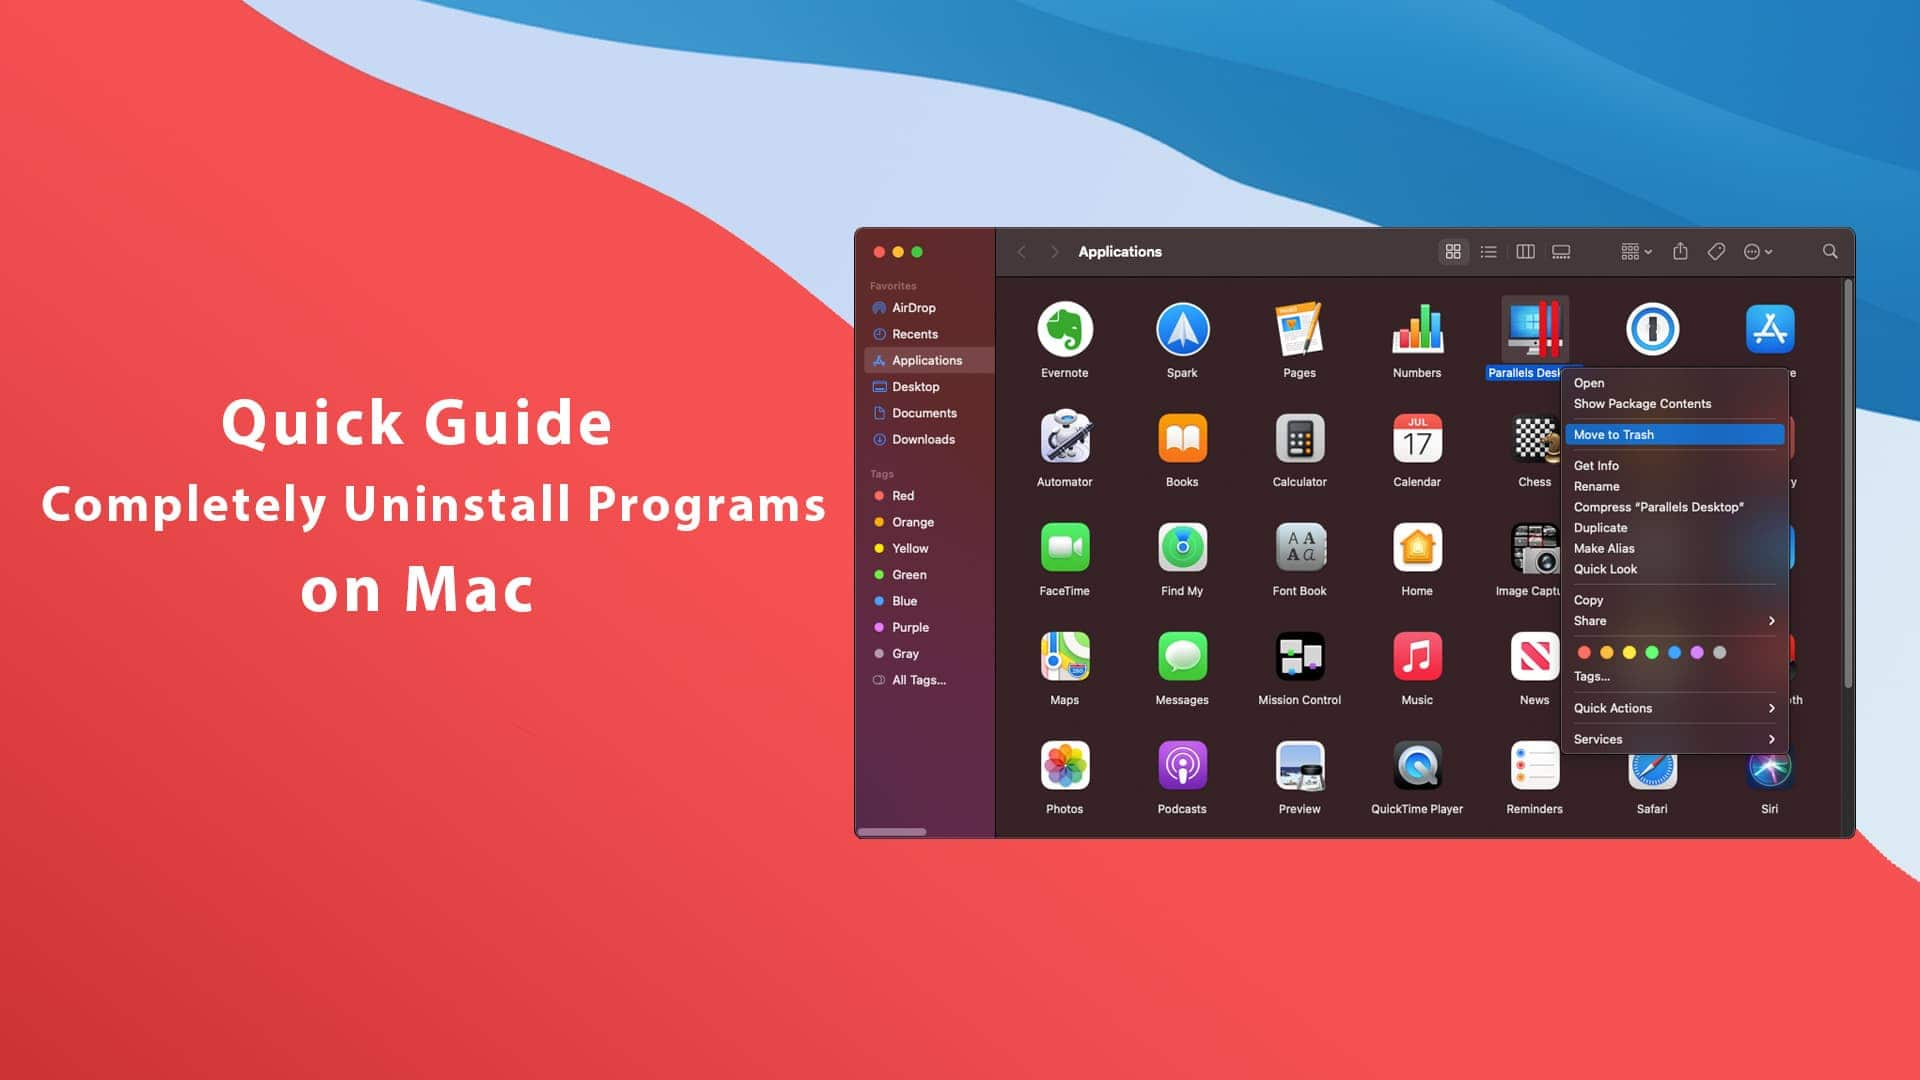 Quick Guide to Completely Uninstall Programs on Mac